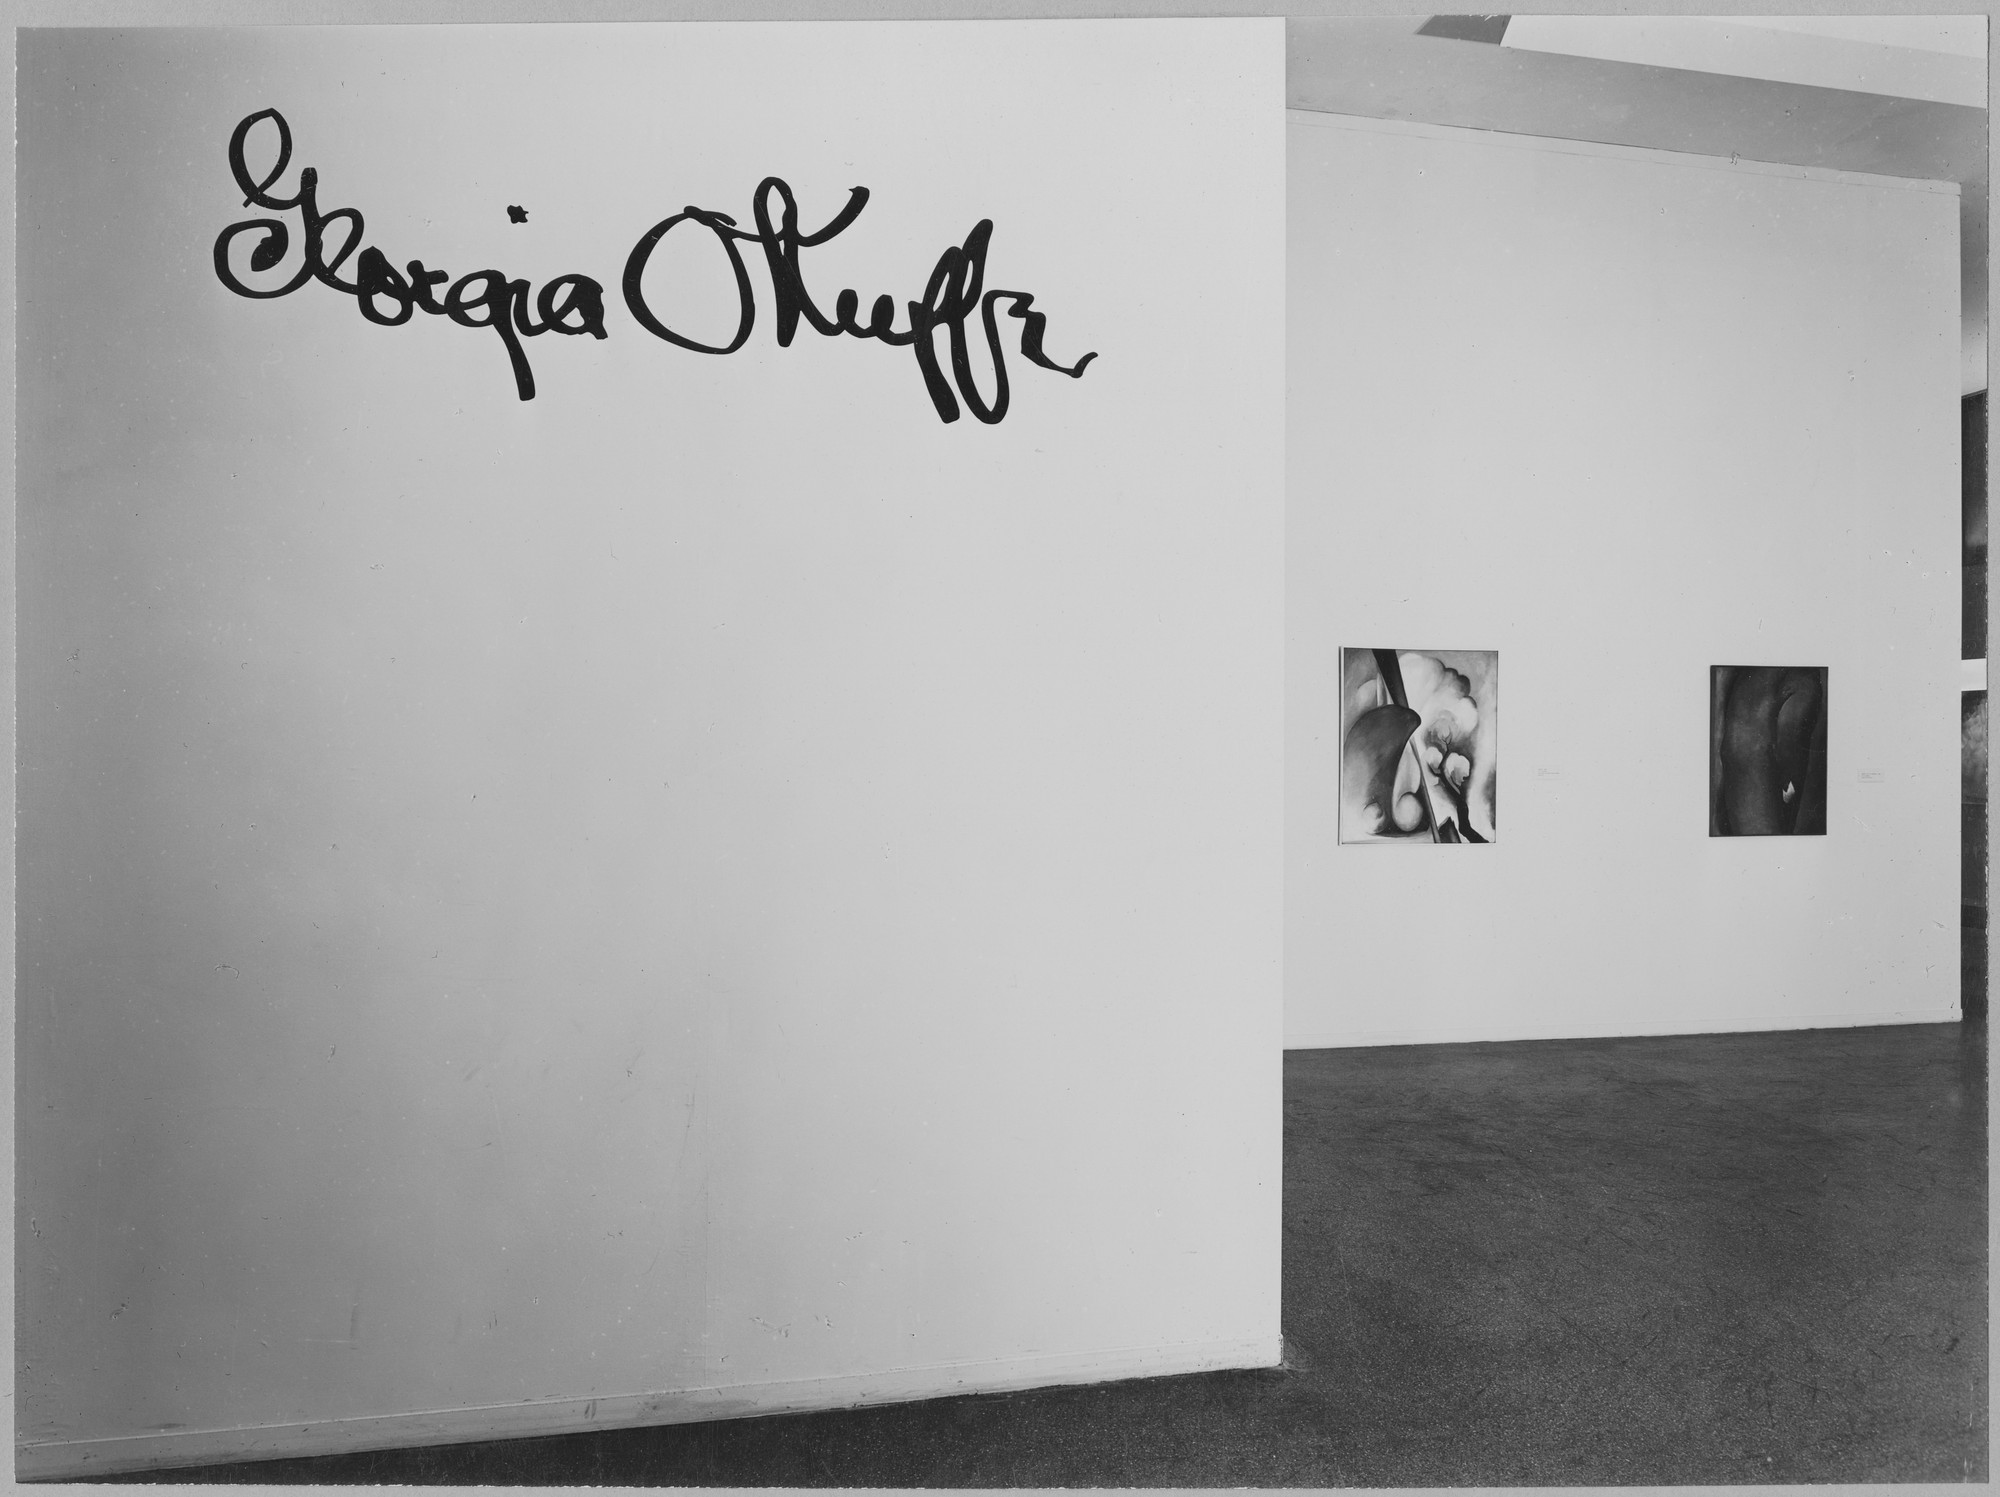 "Installation view of the exhibition, ""Georgia O'Keeffe."" May 14, 1946–August 25, 1946. Photographic Archive. The Museum of Modern Art Archives, New York. IN319.1. Photograph by Soichi Sunami."